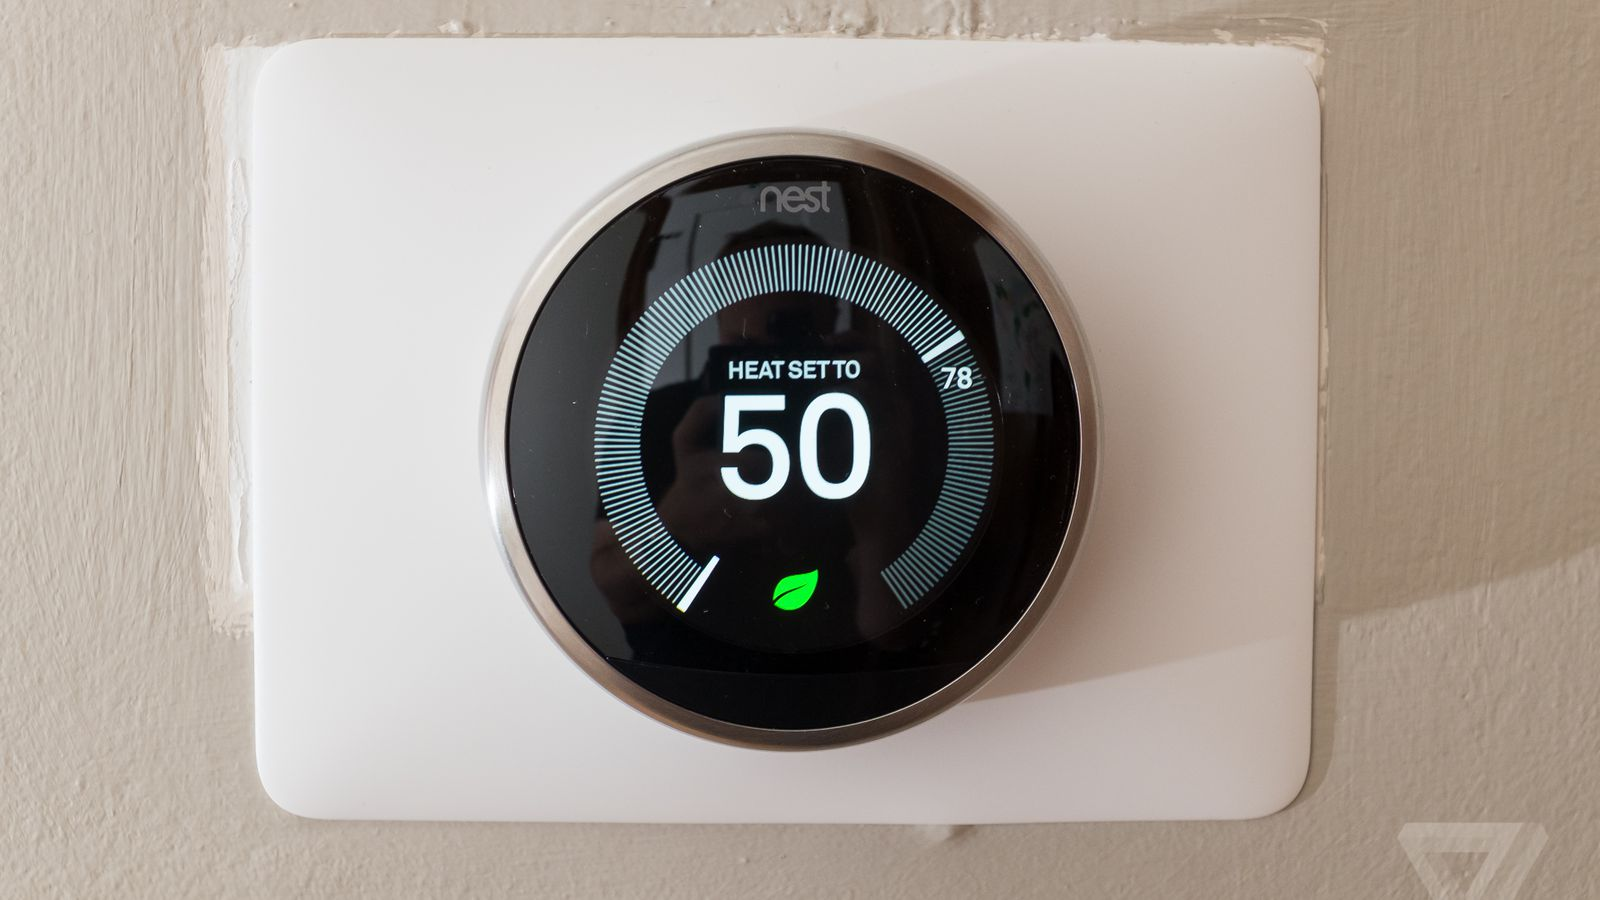 Nest releases open-source version of its networking protocol   The Verge